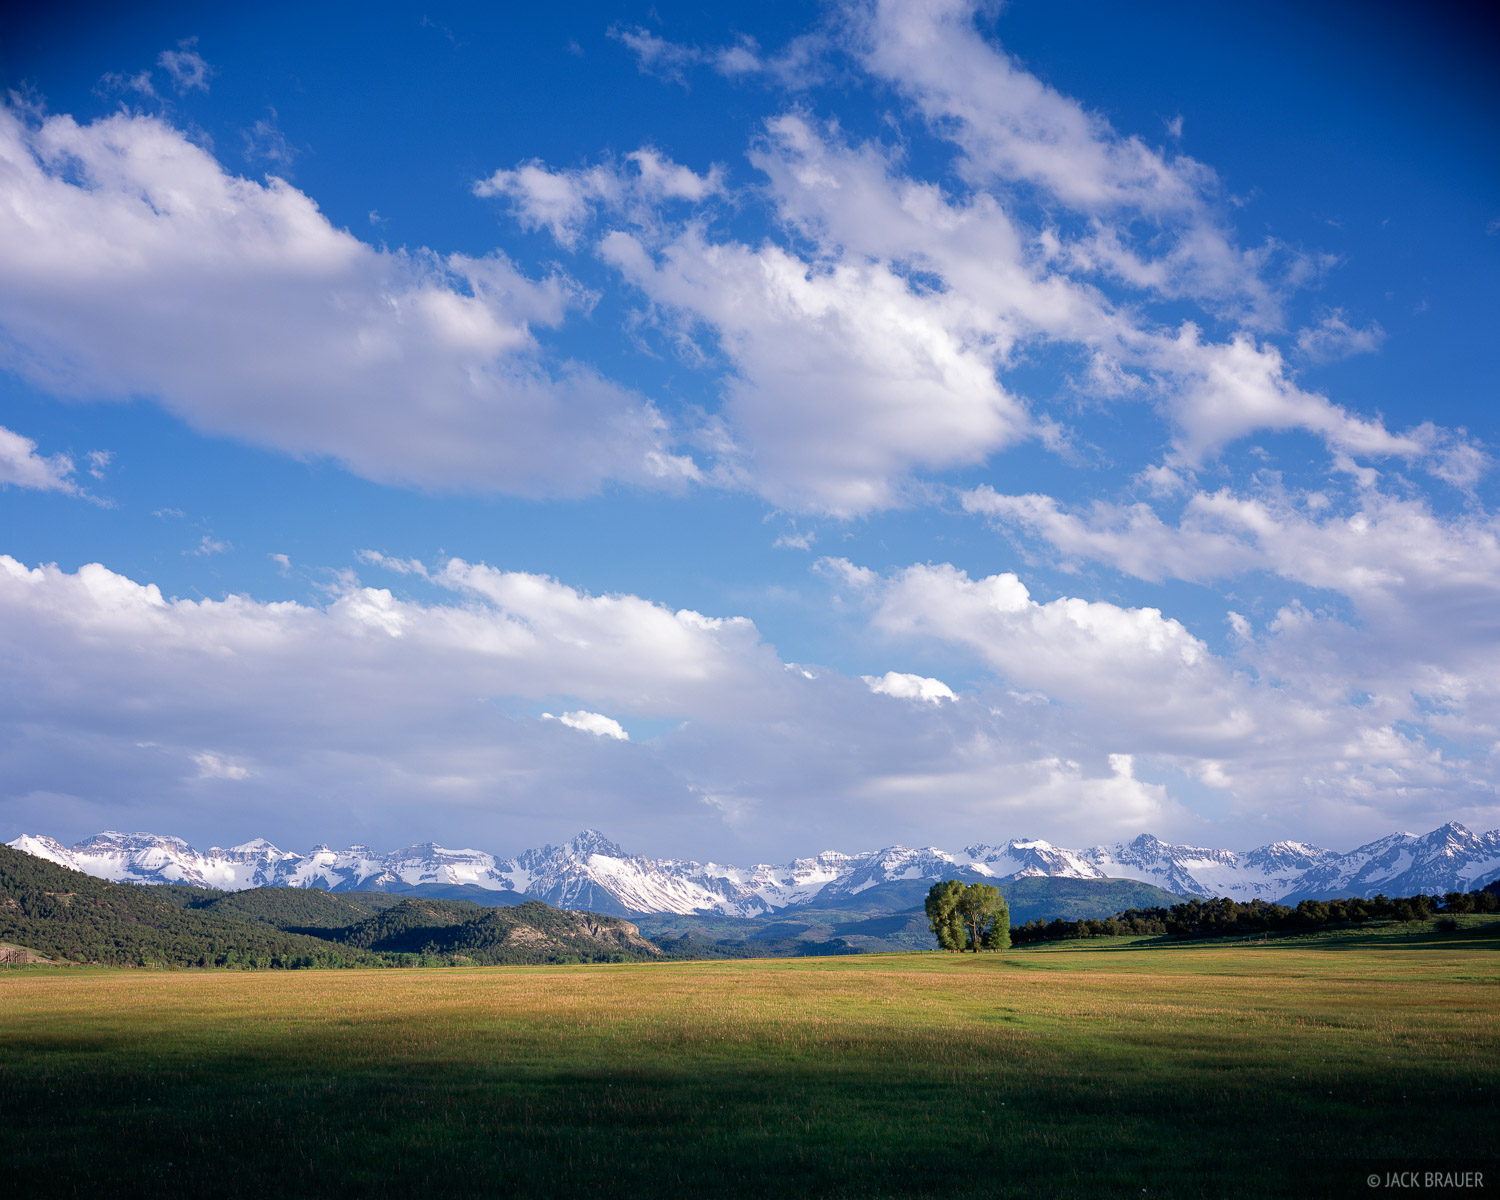 Big clouds, late afternoon light, and the Sneffels Range - May